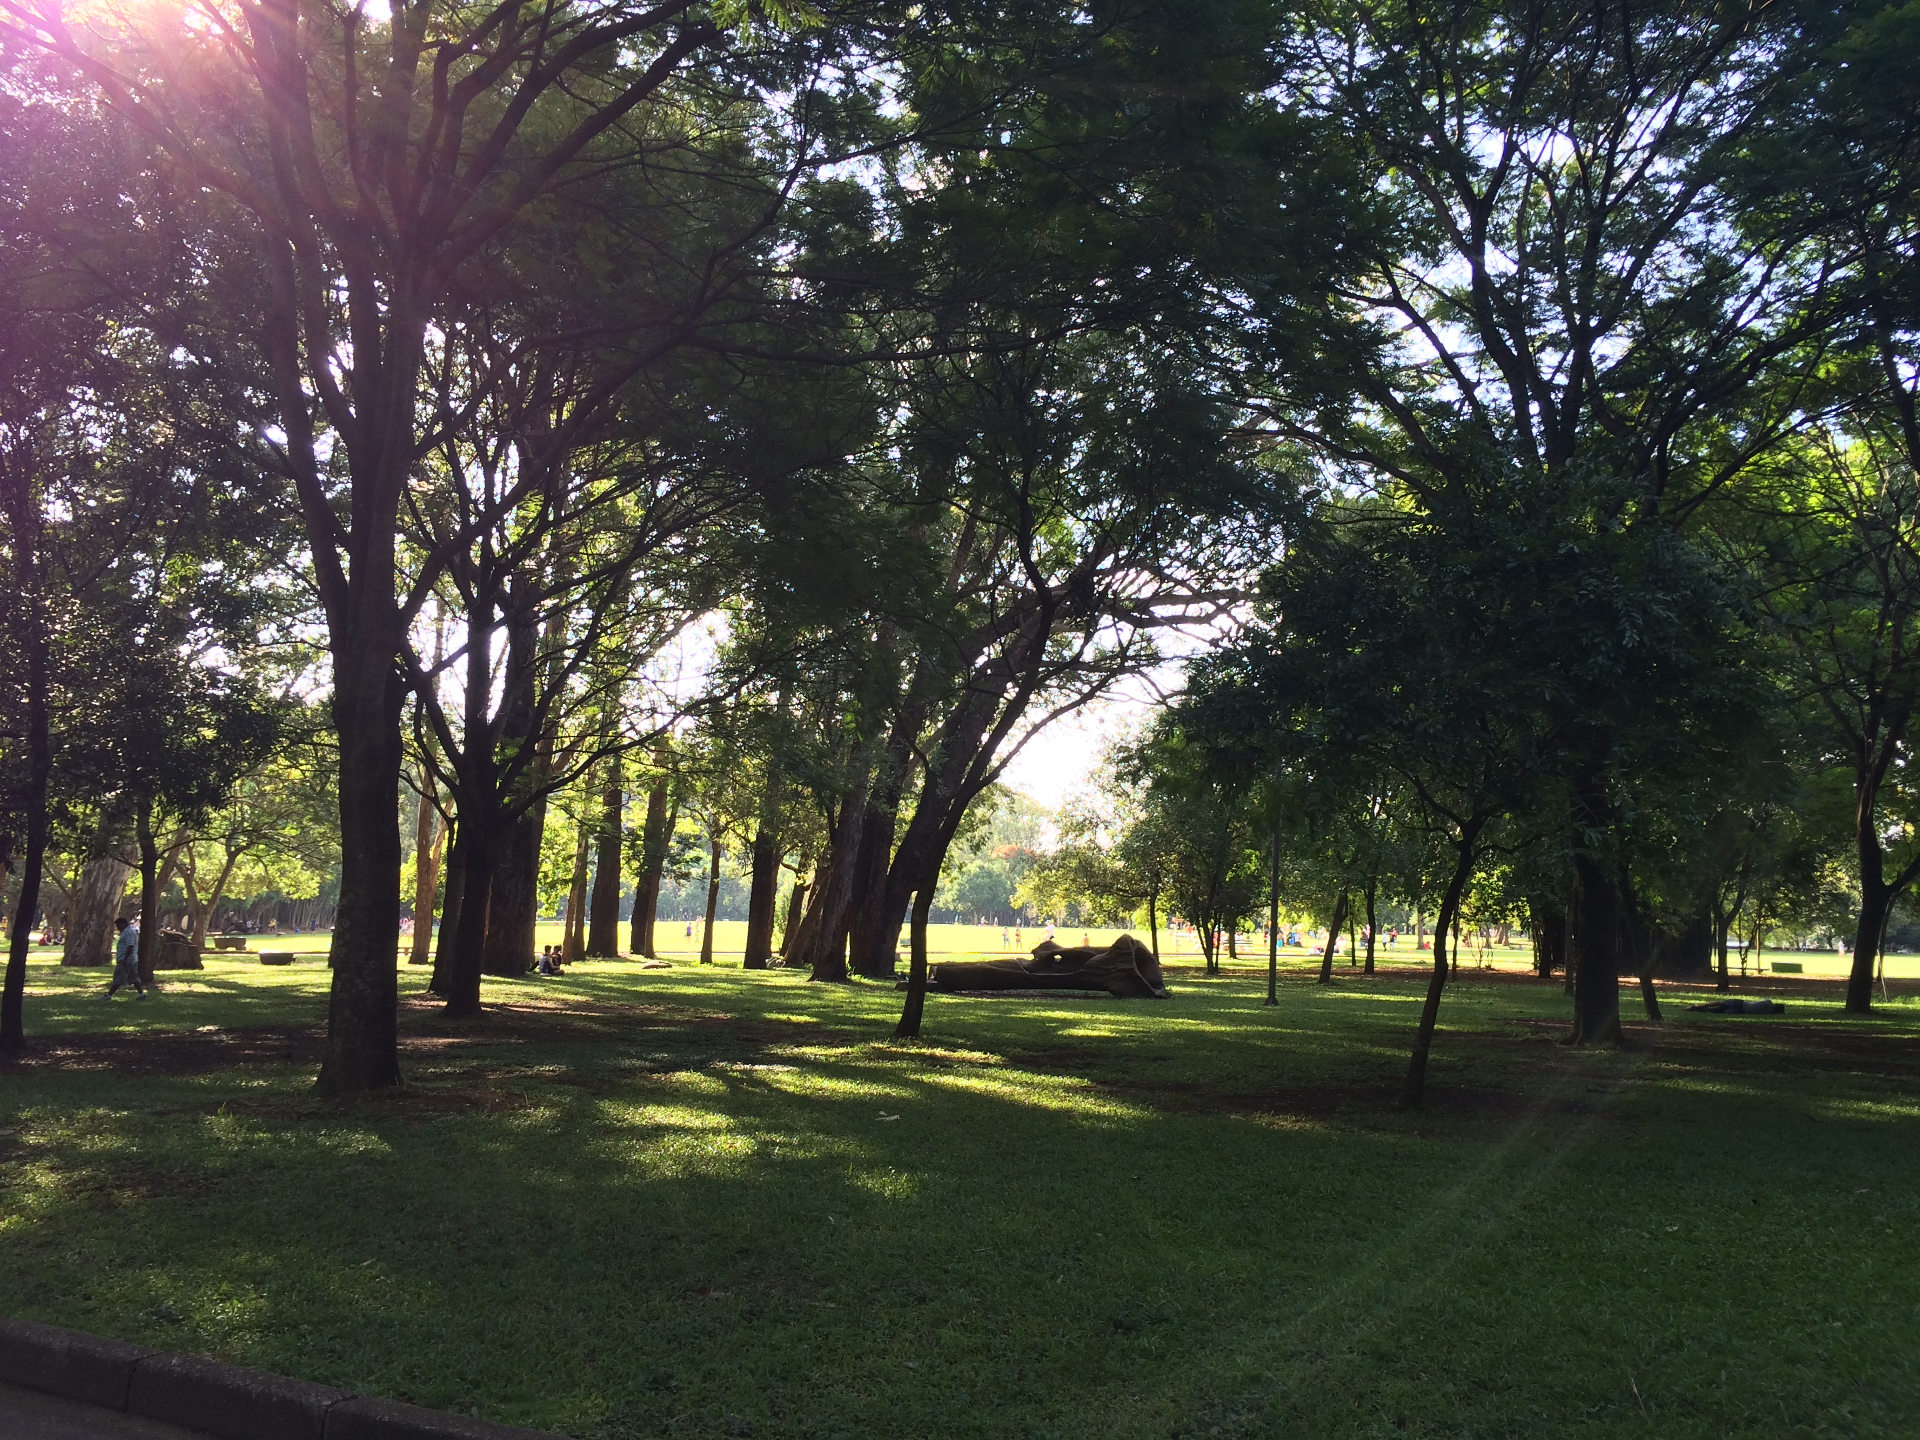 An afternoon in Ibirapuera Park - By @santanavagner